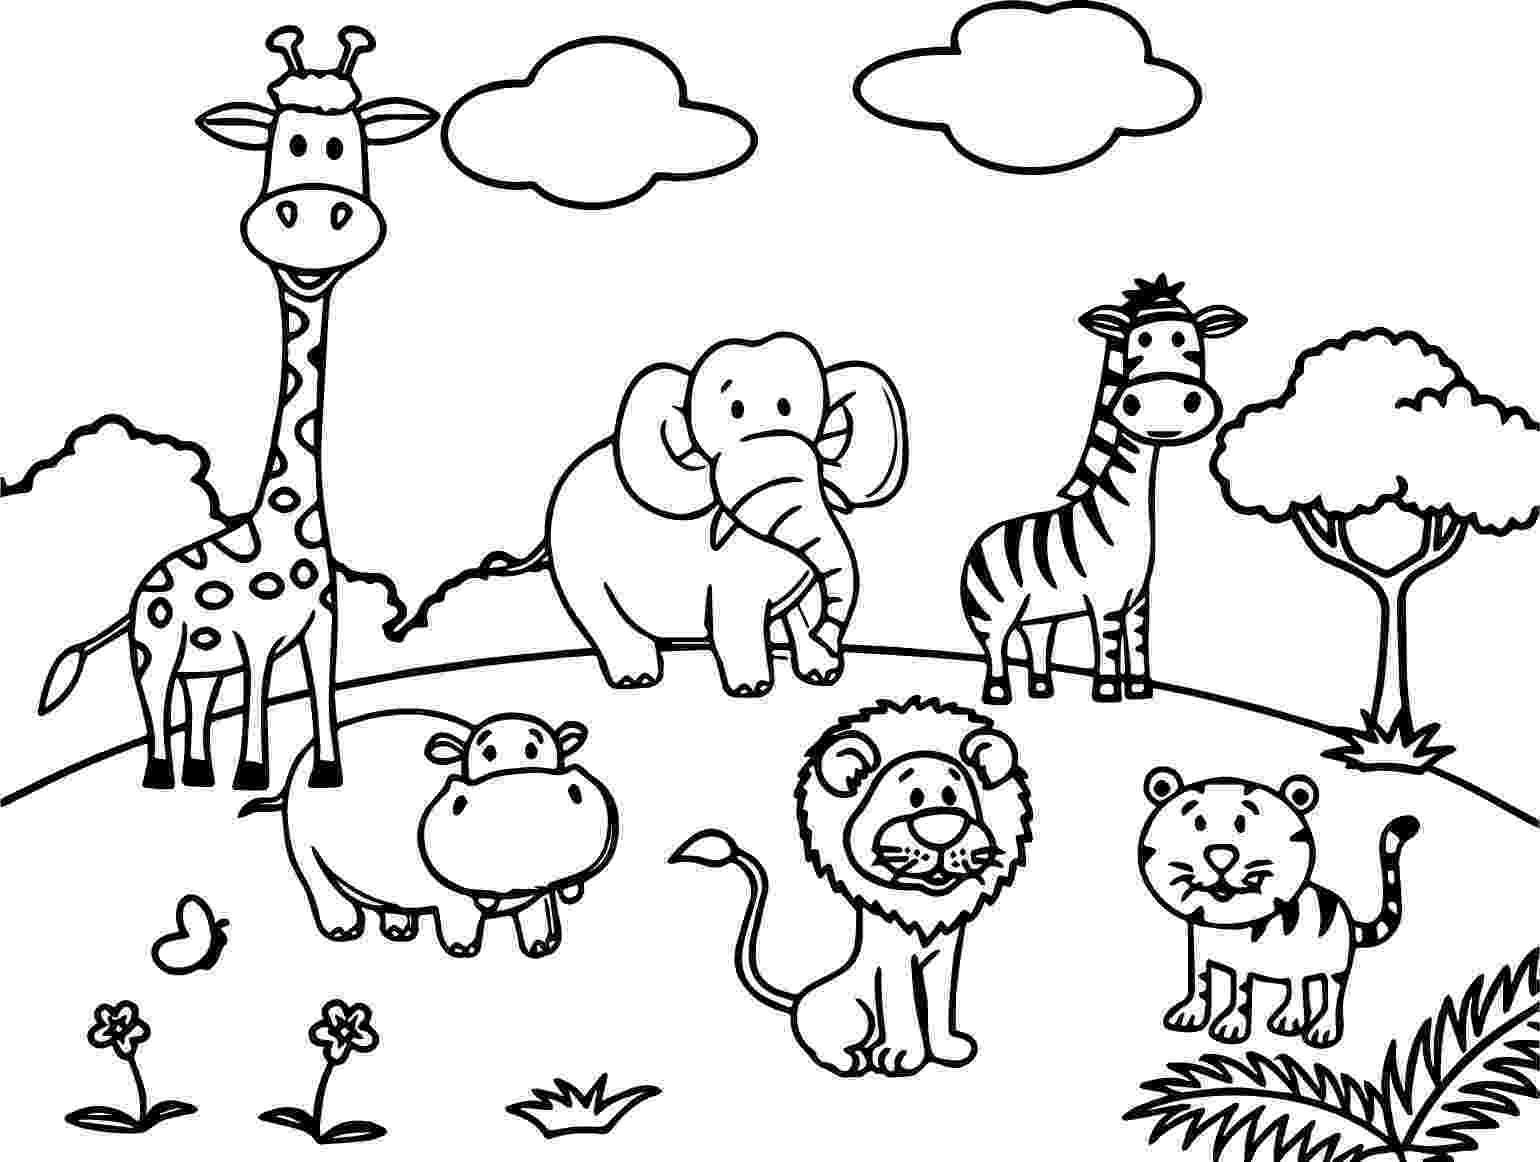 cute wild animals colouring pages coloring pages wild animals three little cute baby fox wild animals cute colouring pages